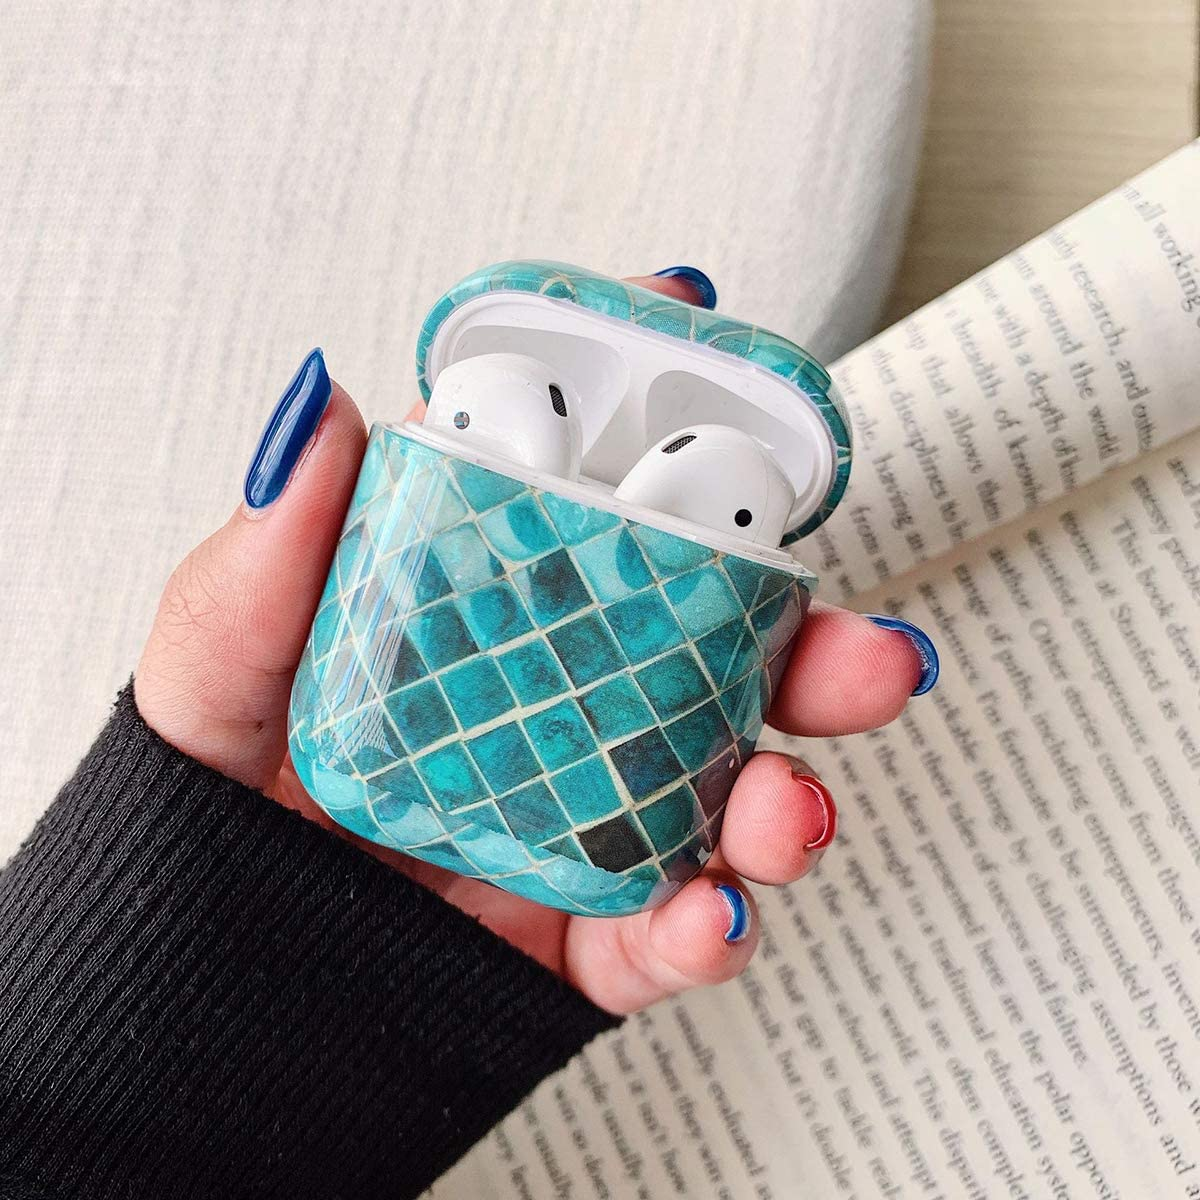 Amamcy Mermaid Scales Pattern AirPods Case Protective AirPods Hard Cover Shockproof Case for Apple AirPods